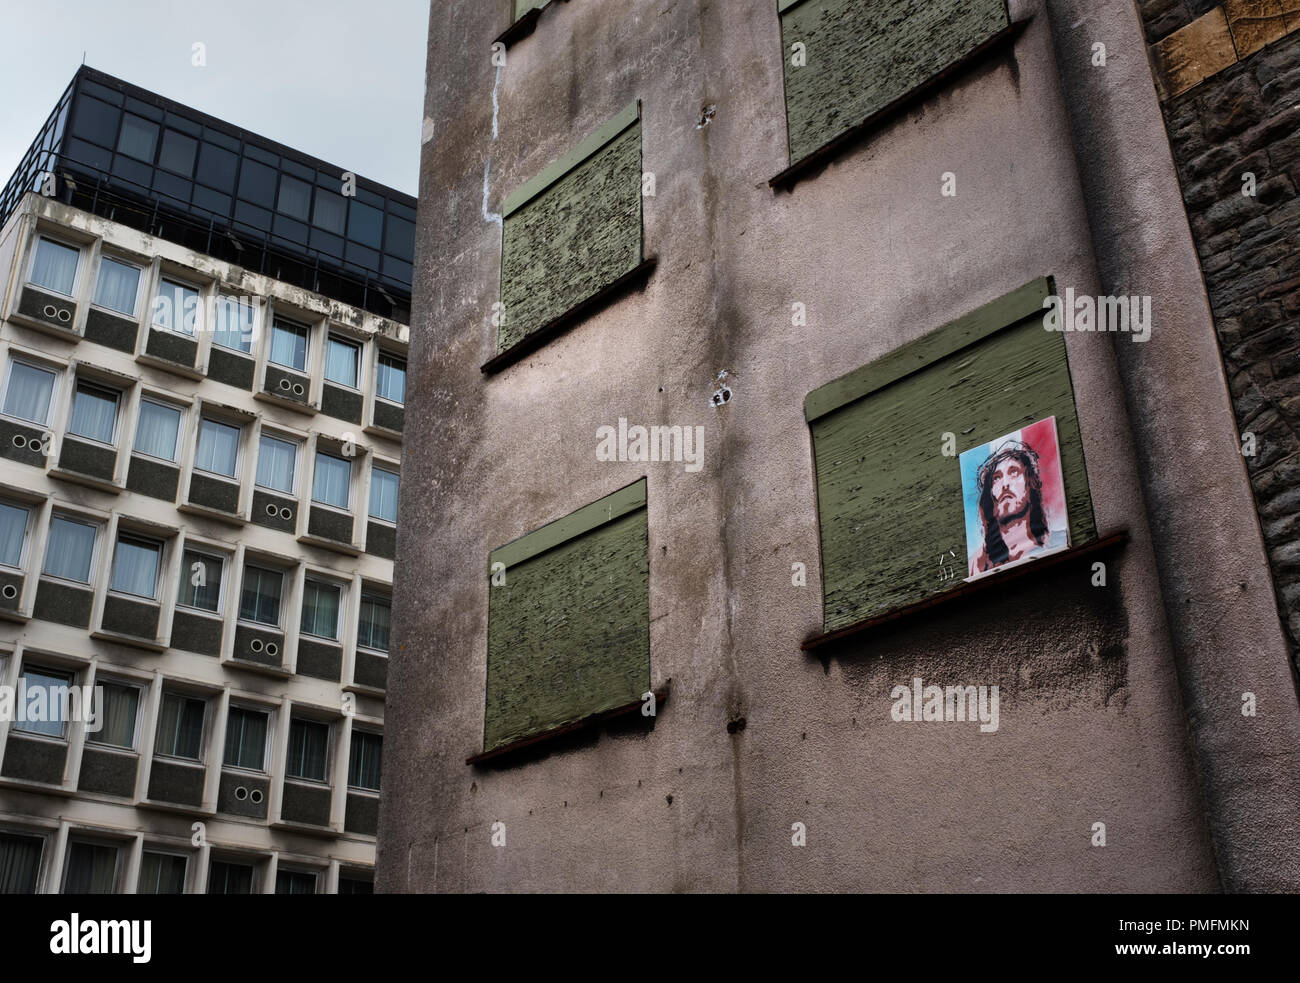 Picture of Robert Powell as Jesus on the side of a boarded up building in the centre of Bristol, U.K. - Stock Image